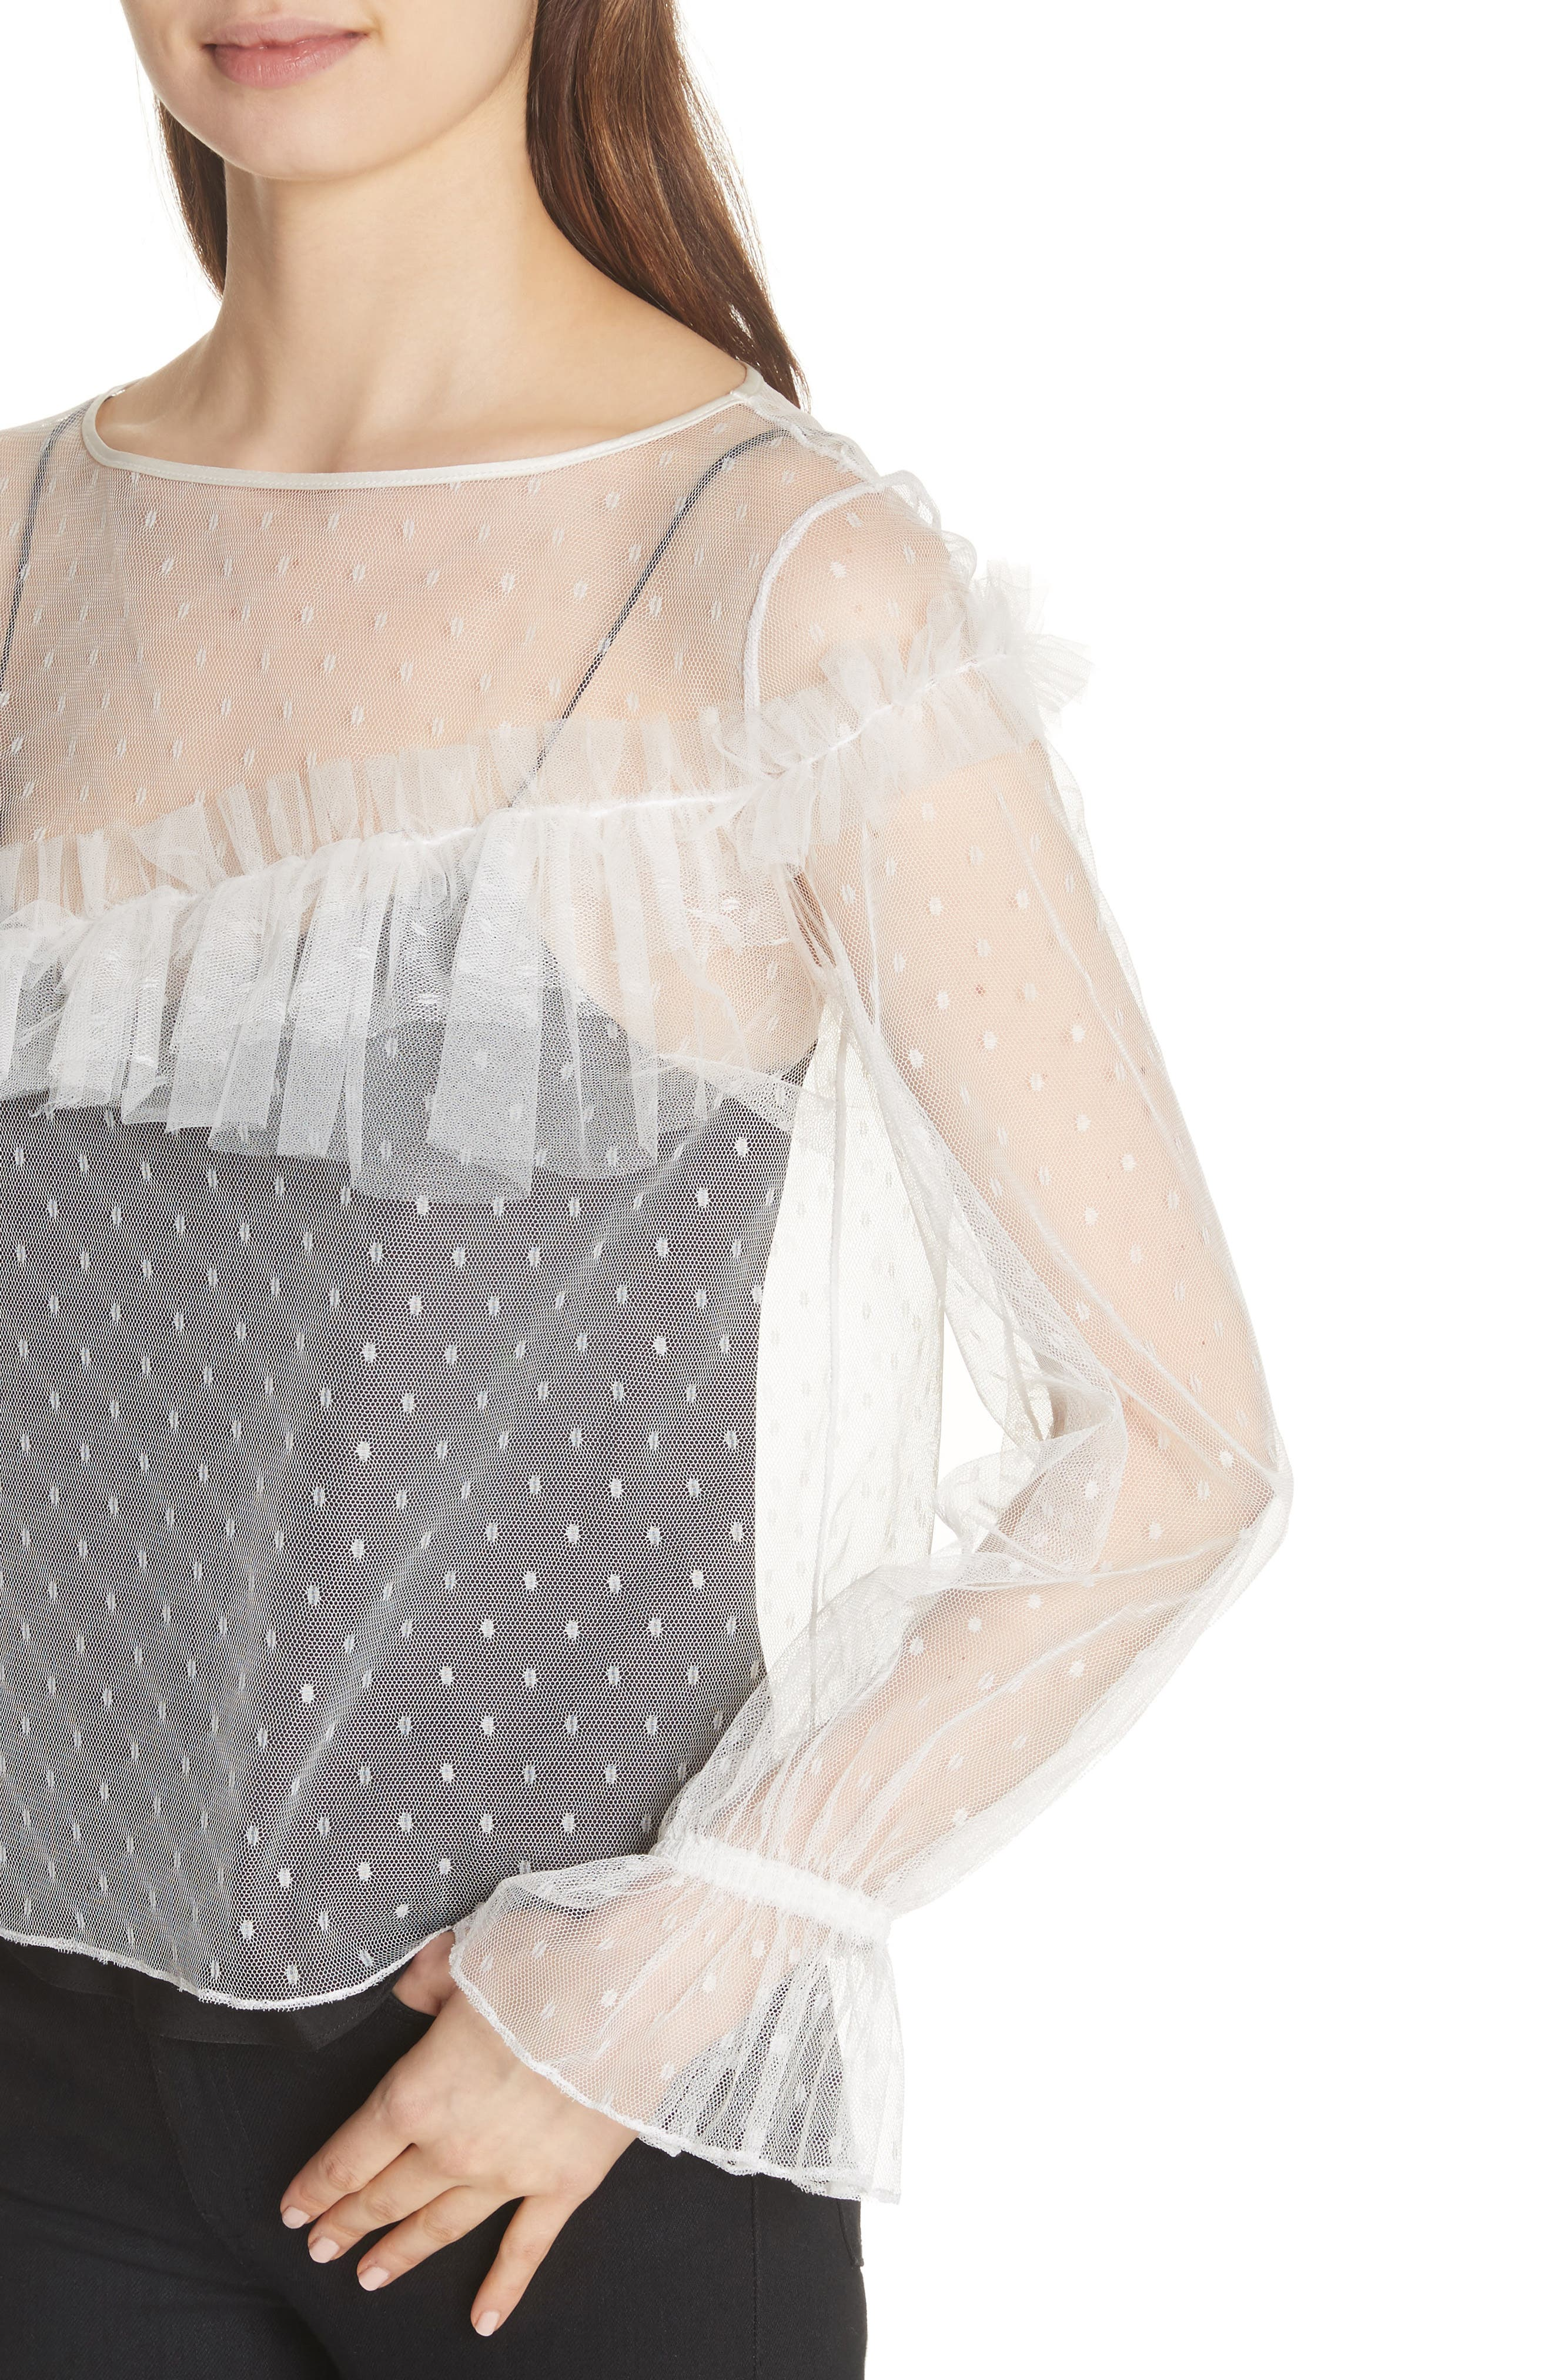 Indio Layered Swiss Dot Top,                             Alternate thumbnail 4, color,                             Ivory